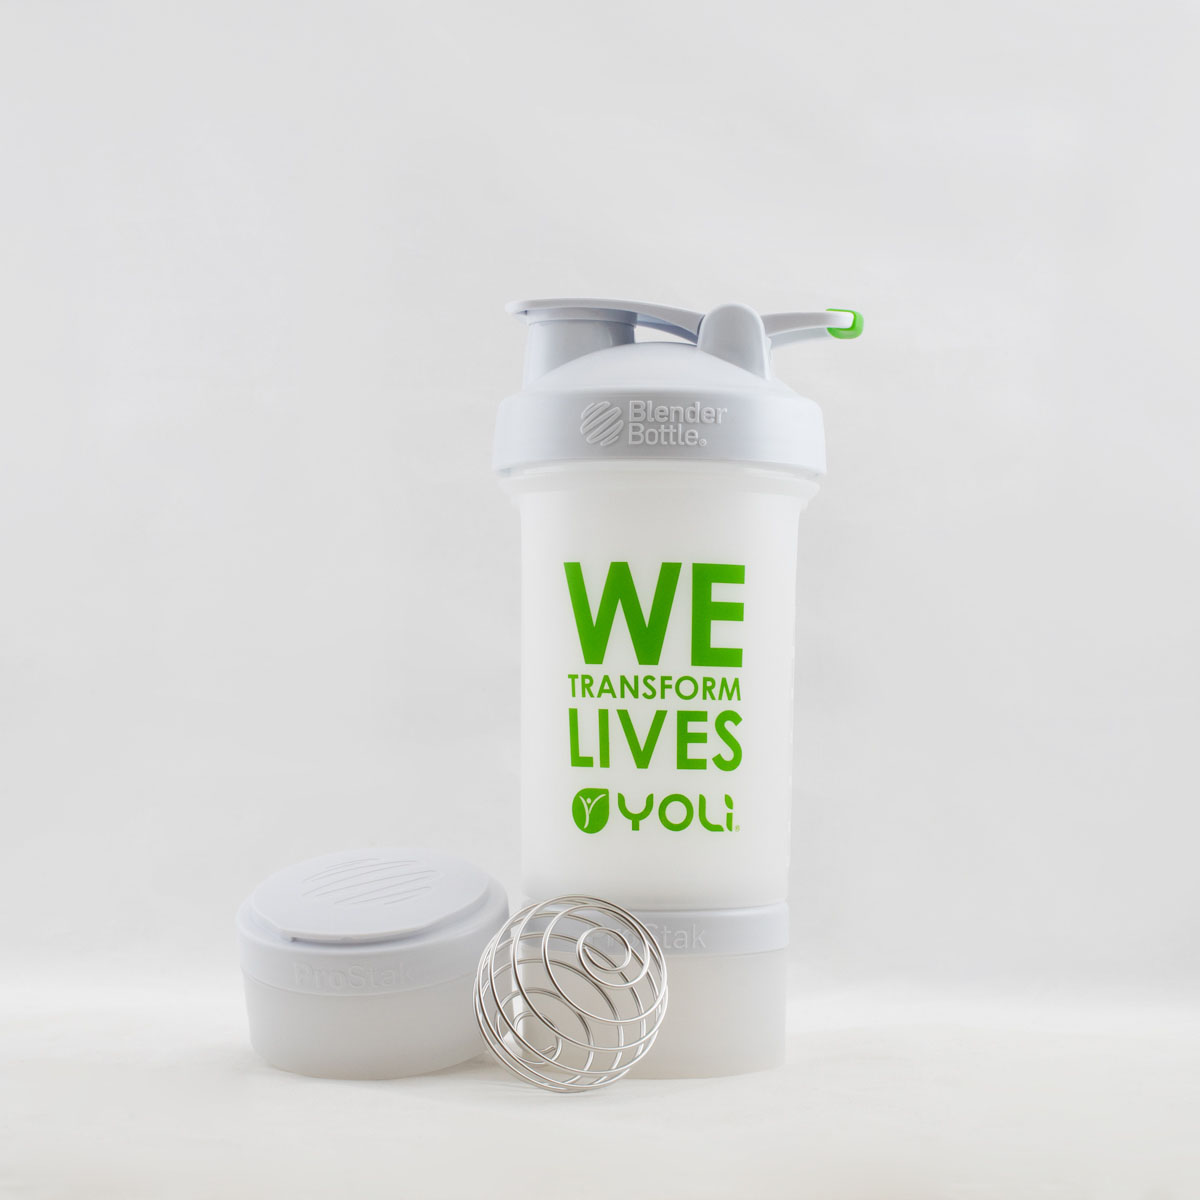 Marketing Materials - Sweet swag is important. Marketing materials live for years and can continue reaching customers long after they leave the packaging. From new t-shirts for the company party to shaker bottles that ship with every order, I can make sure you stand out.